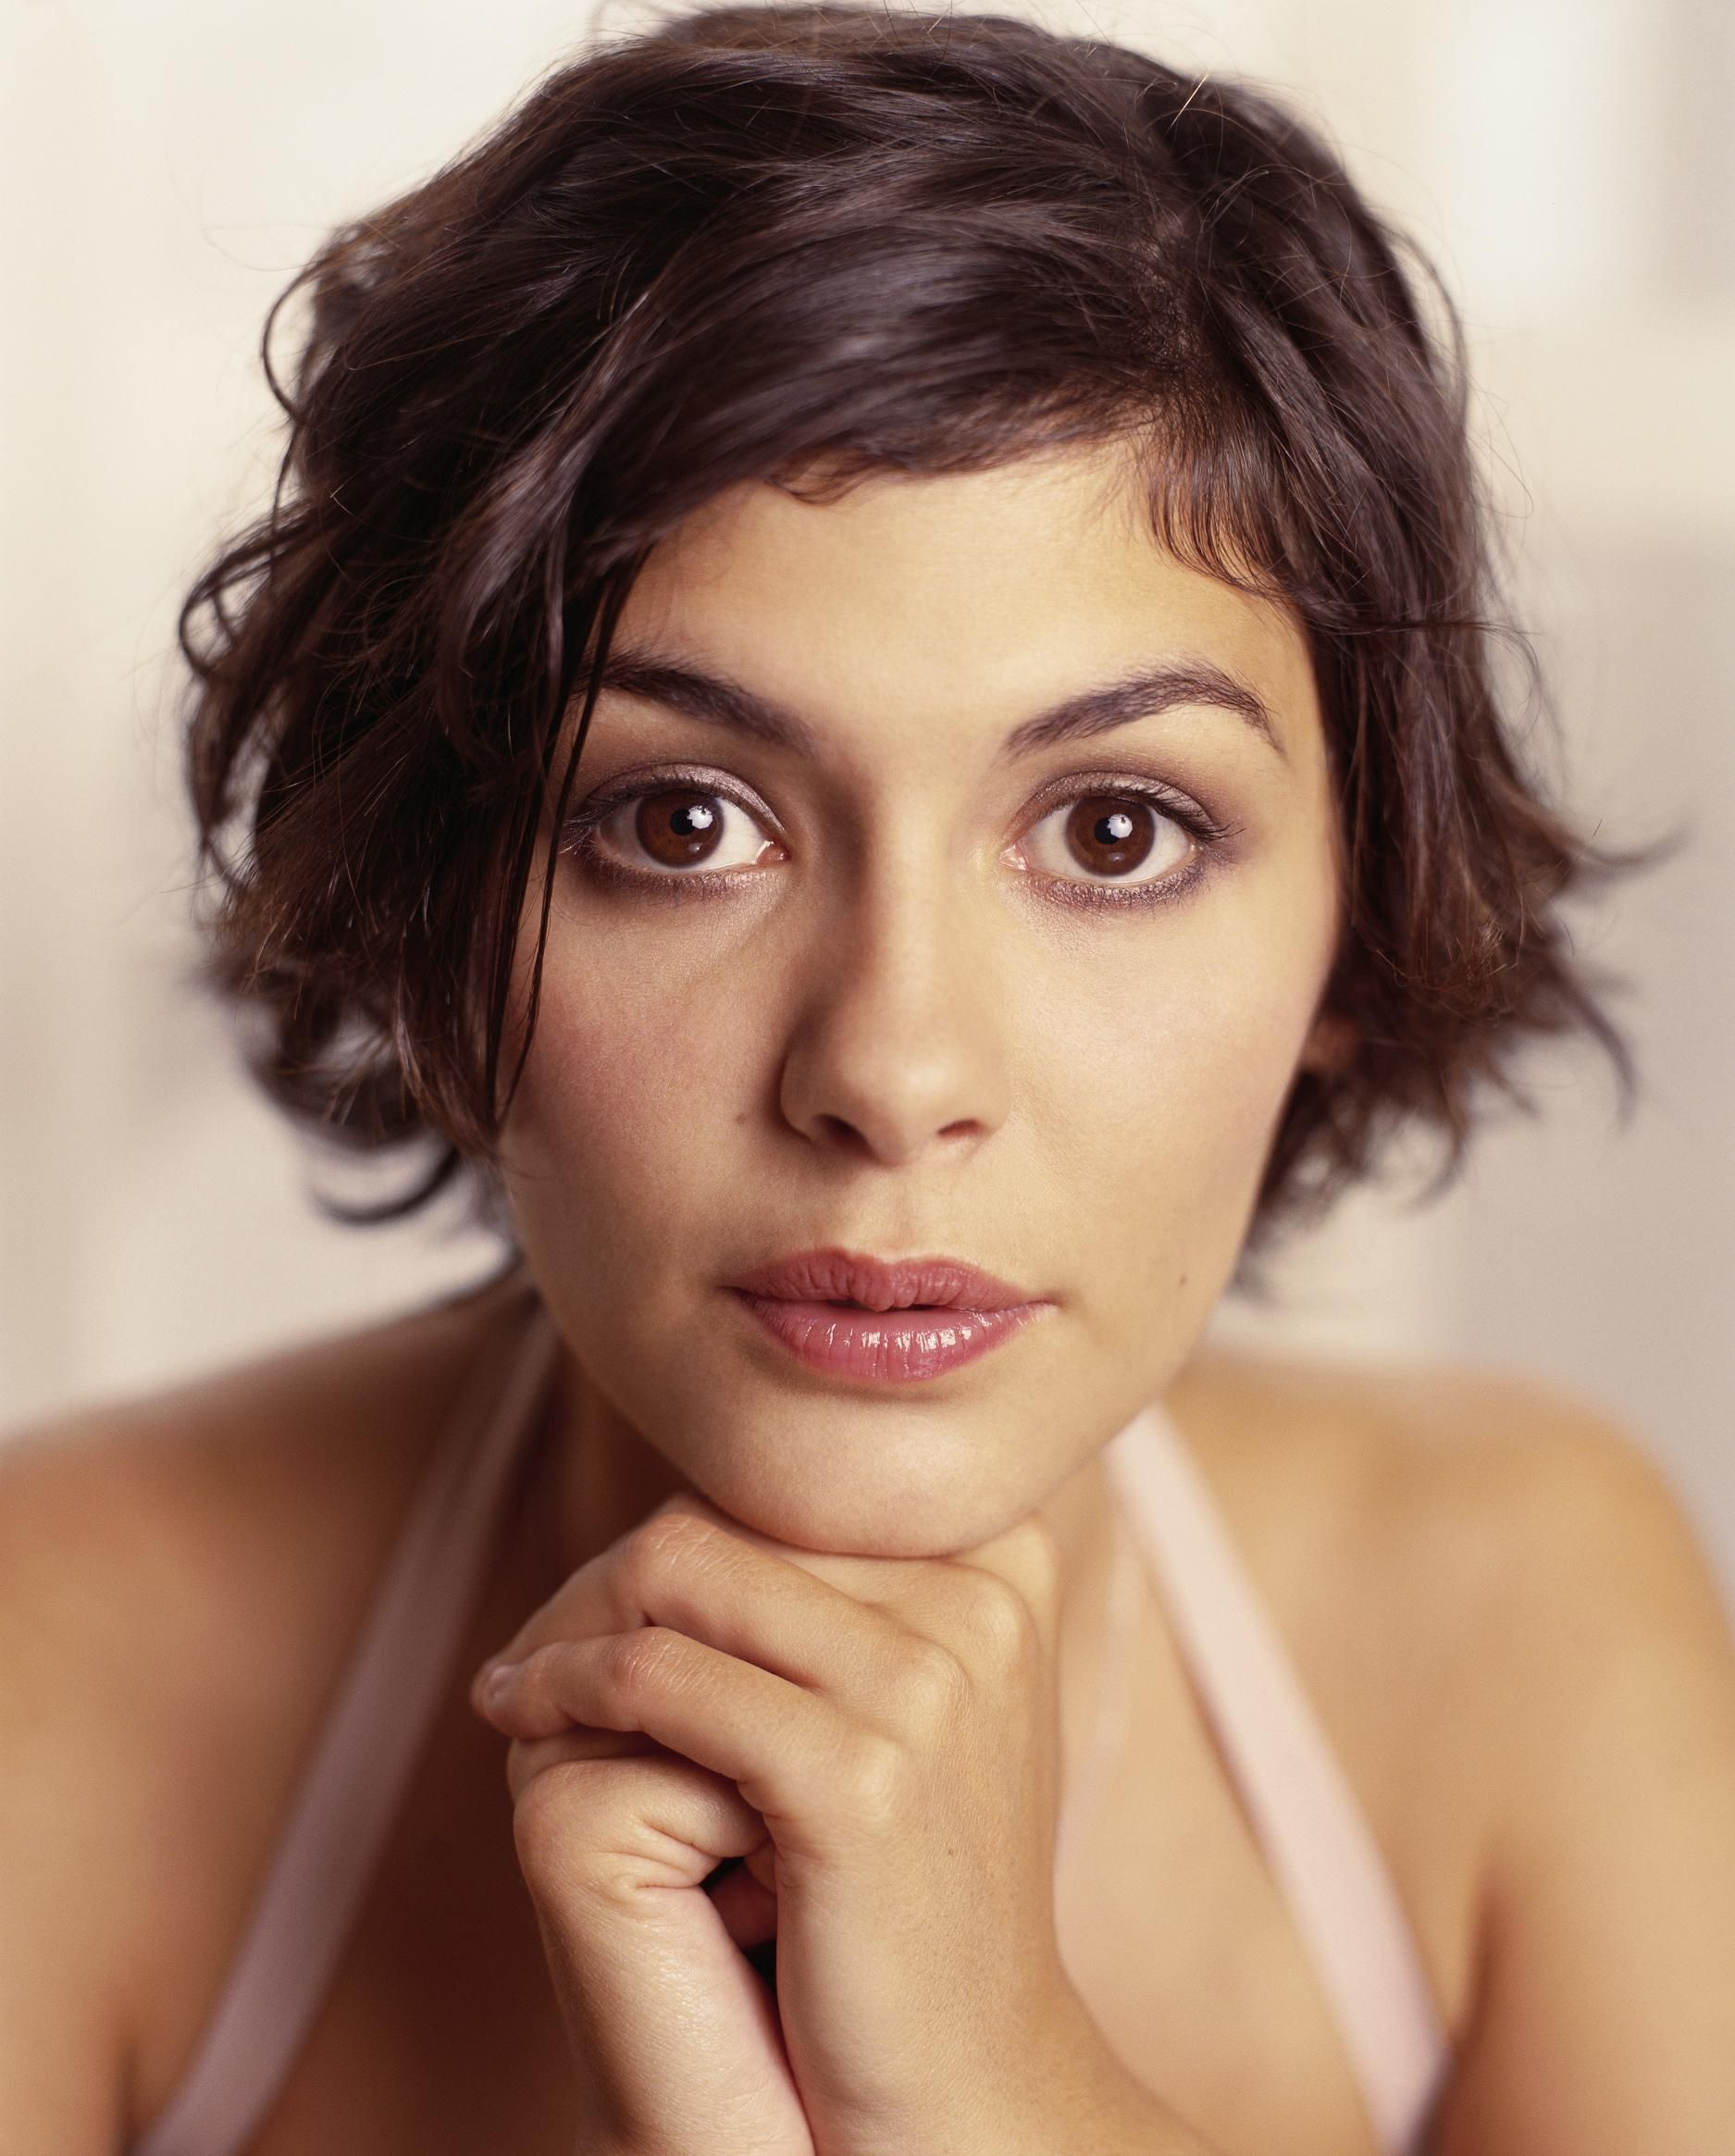 Audrey Tautou Images Full Hd Pictures Por Short Hairstylesshort To Medium